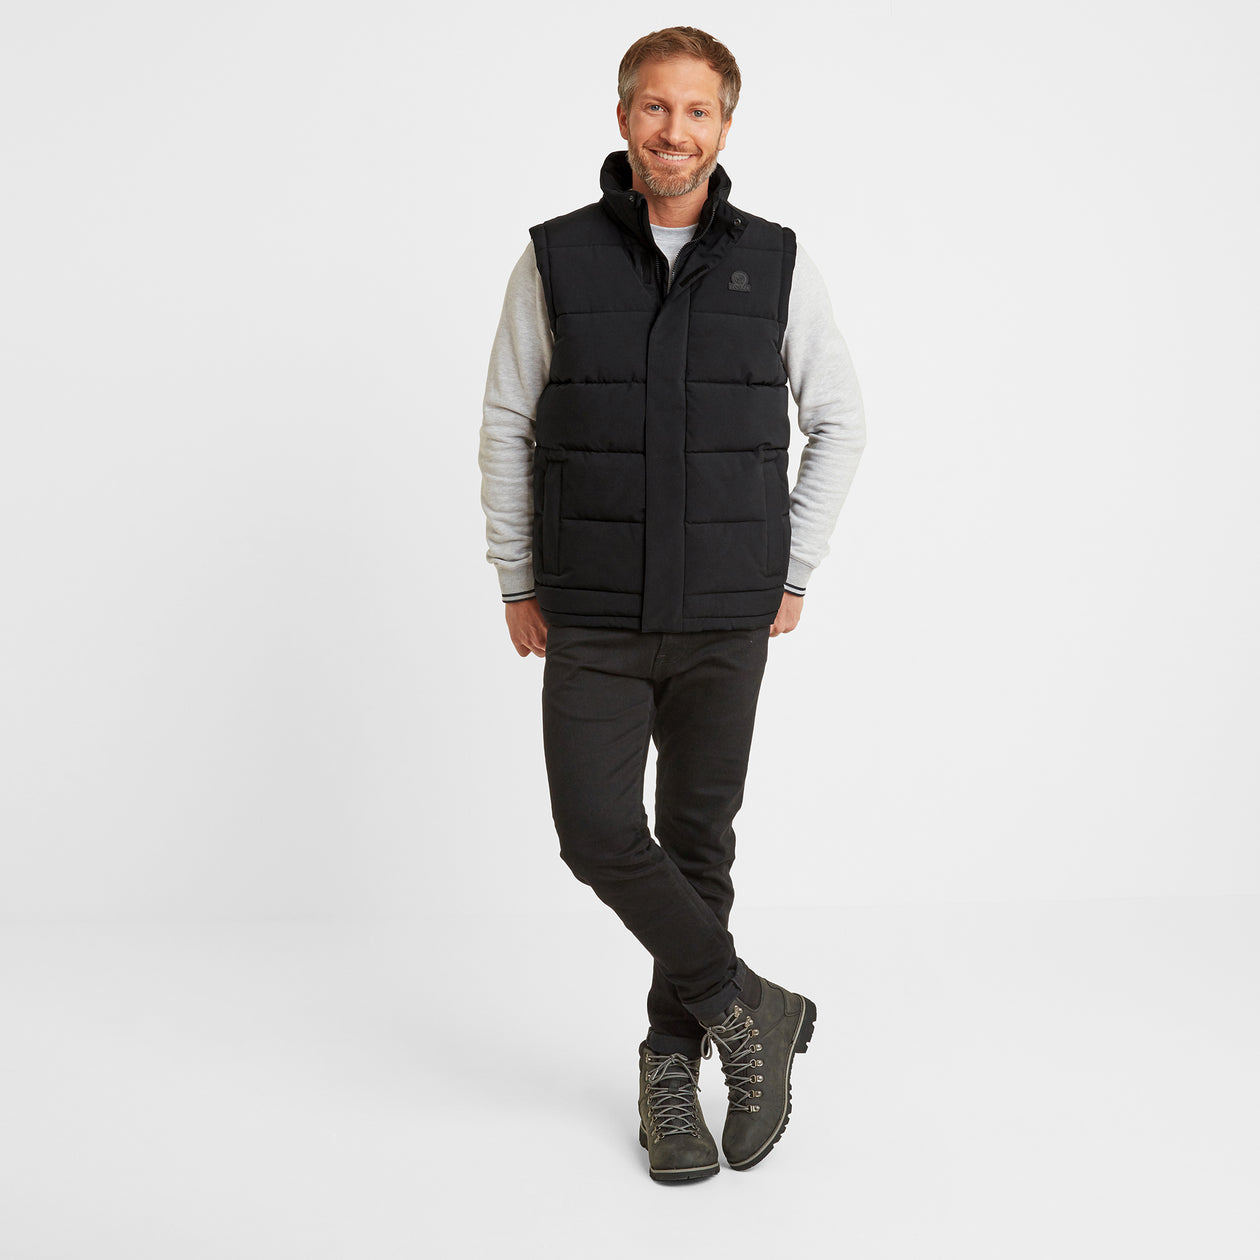 Barmston Mens Insulated Gilet - Black image 4